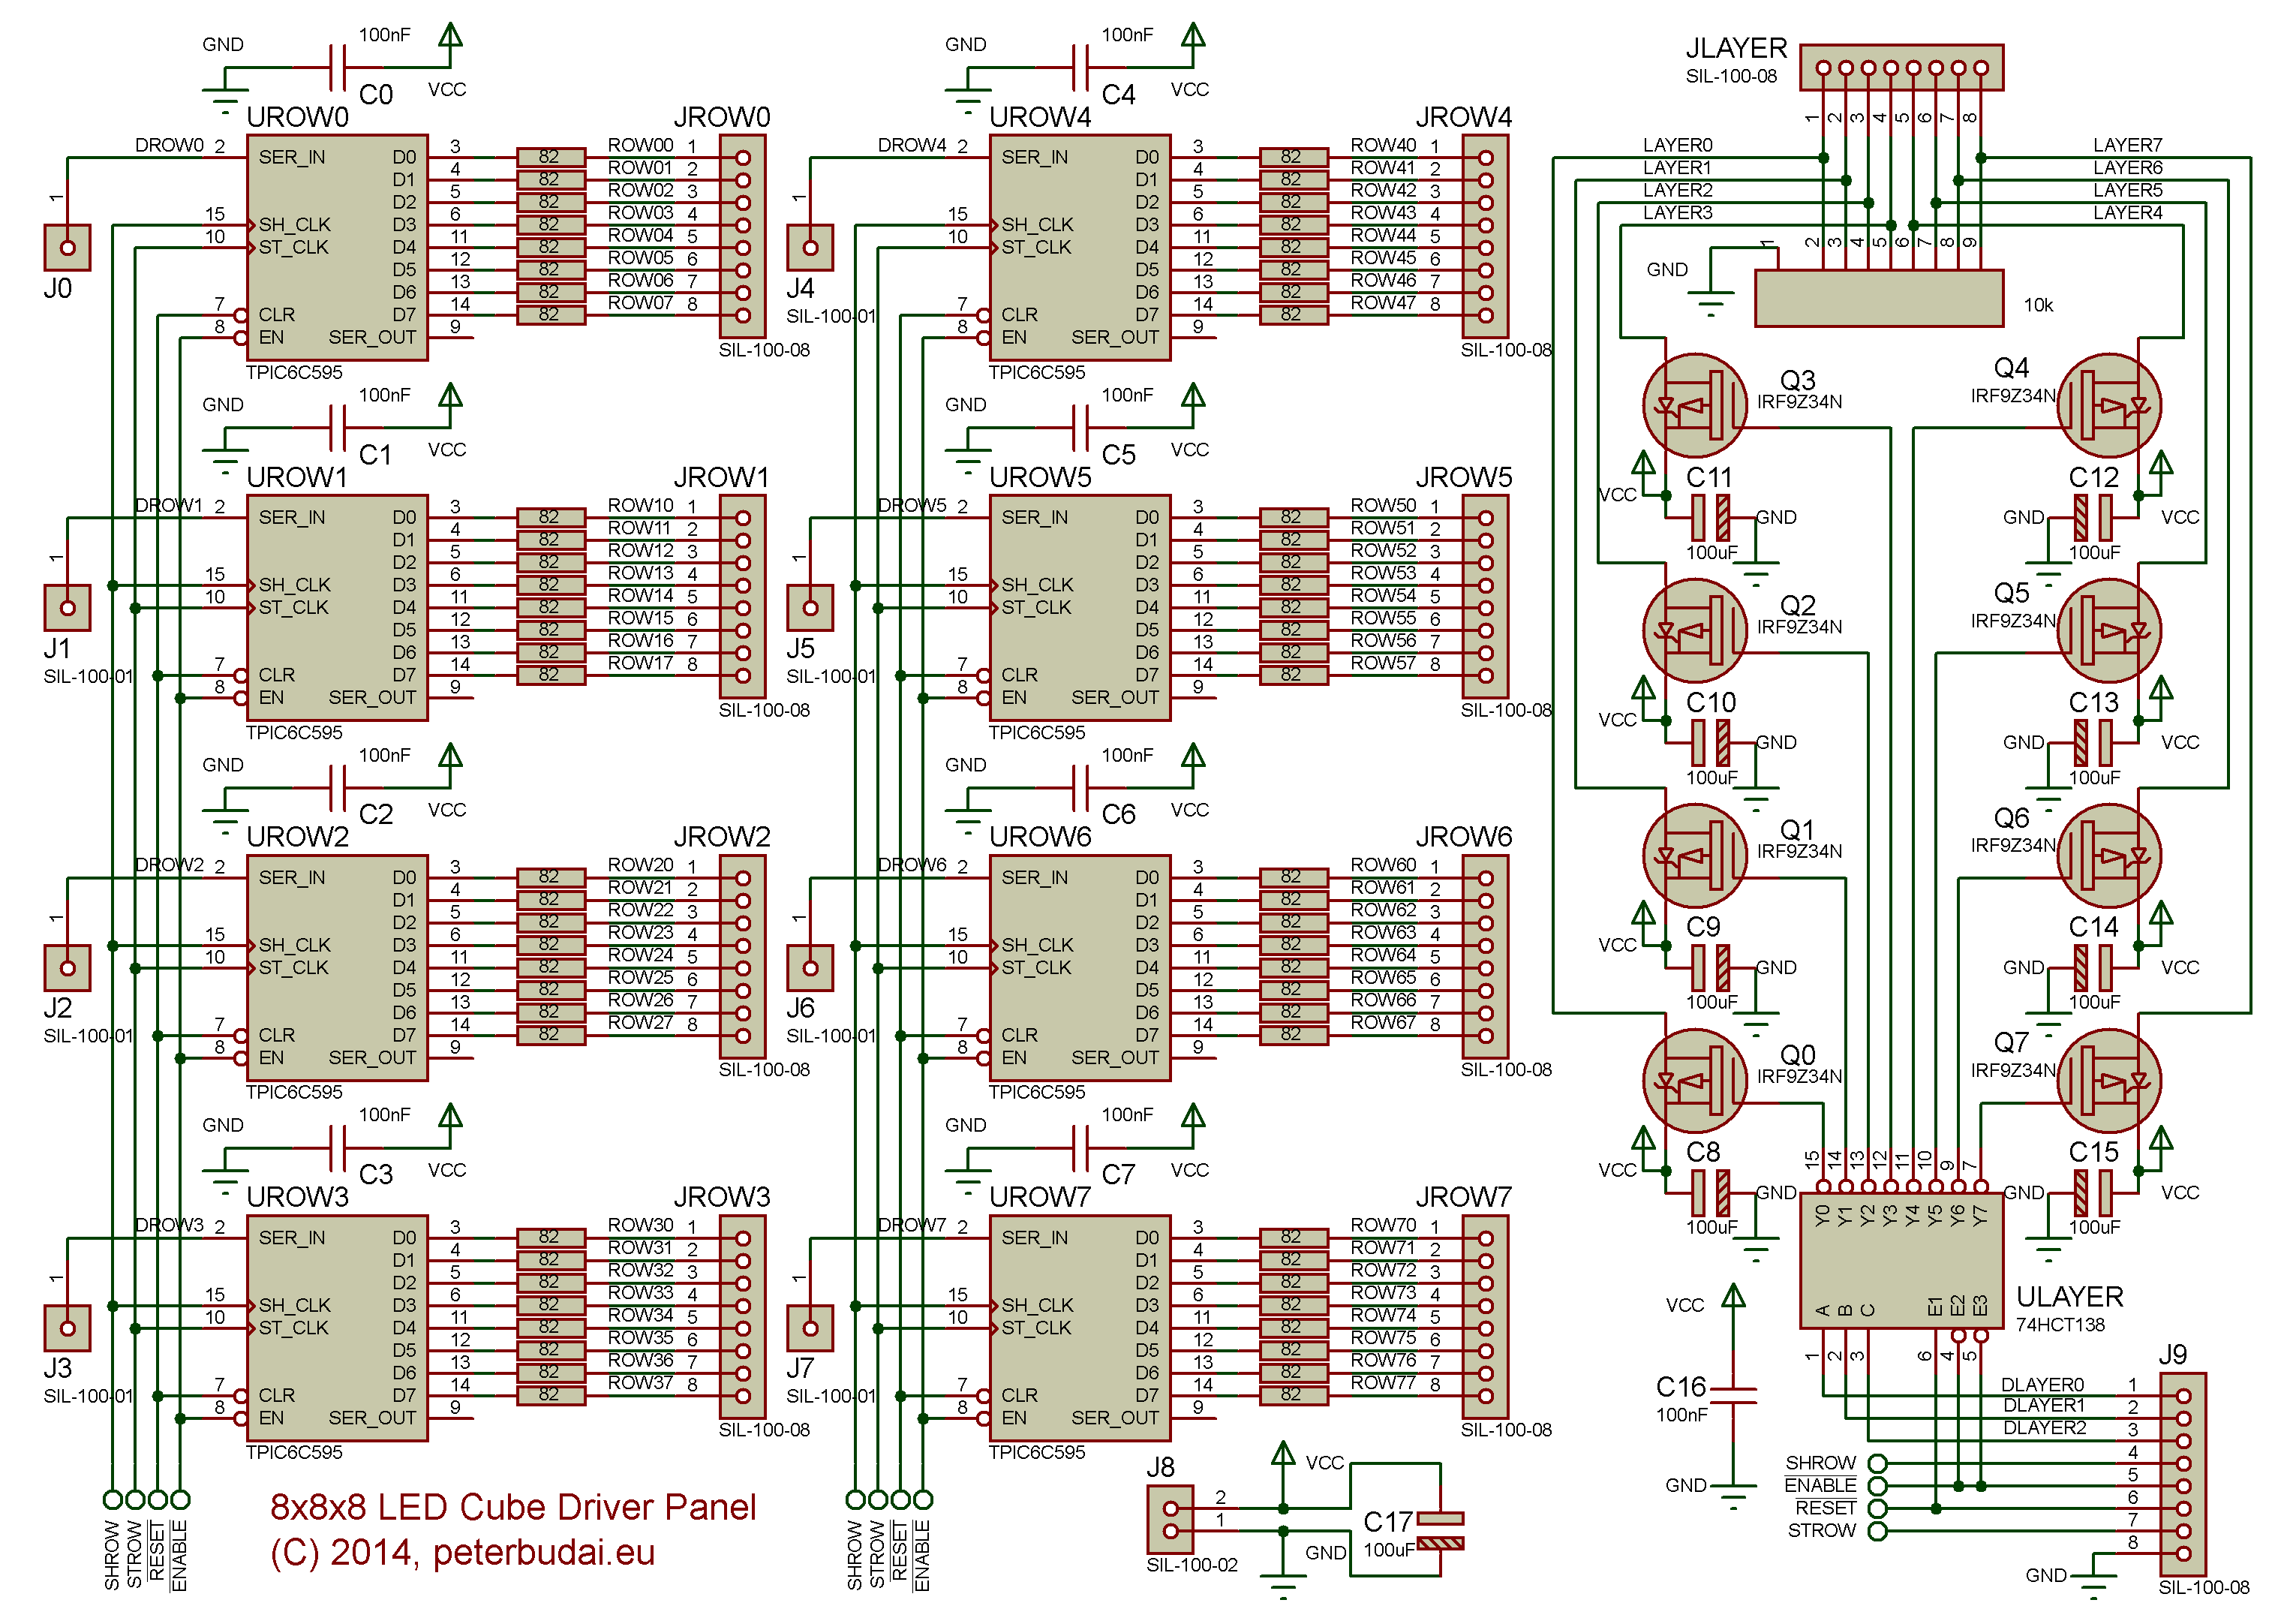 LED cube driver circuit schematic